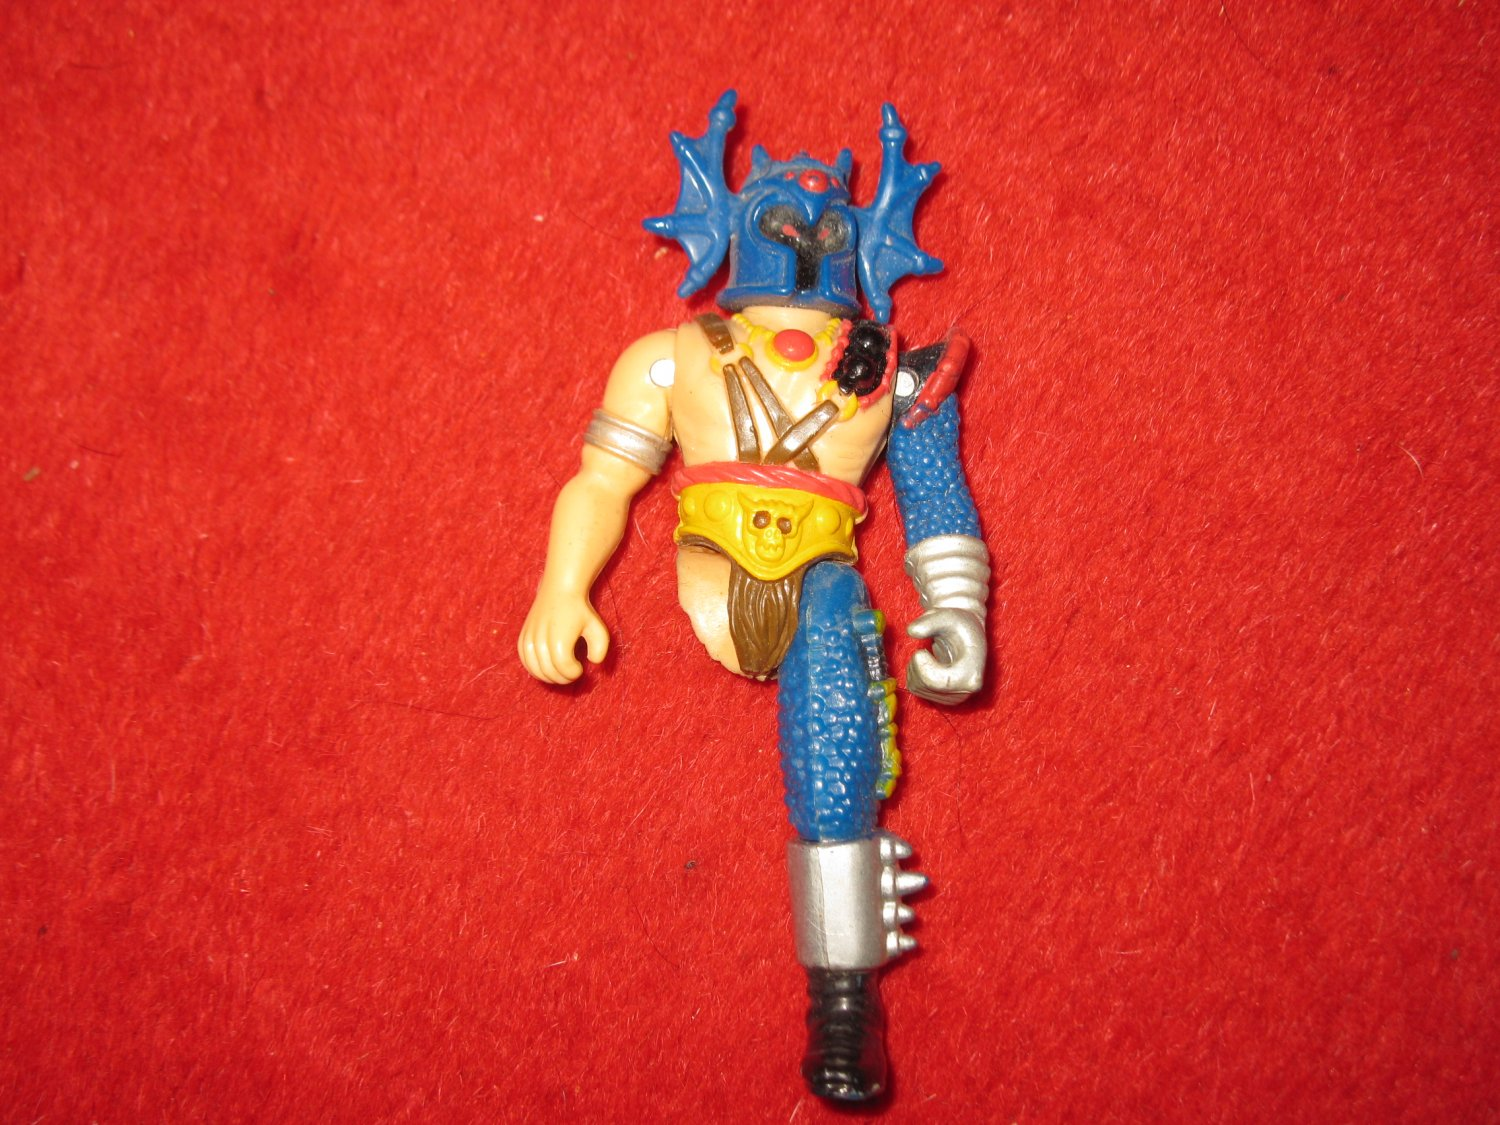 Vintage 1983 TSR AD&D Action Figure: Warduke - Missing right leg. - Advanced Dungeons & dragons